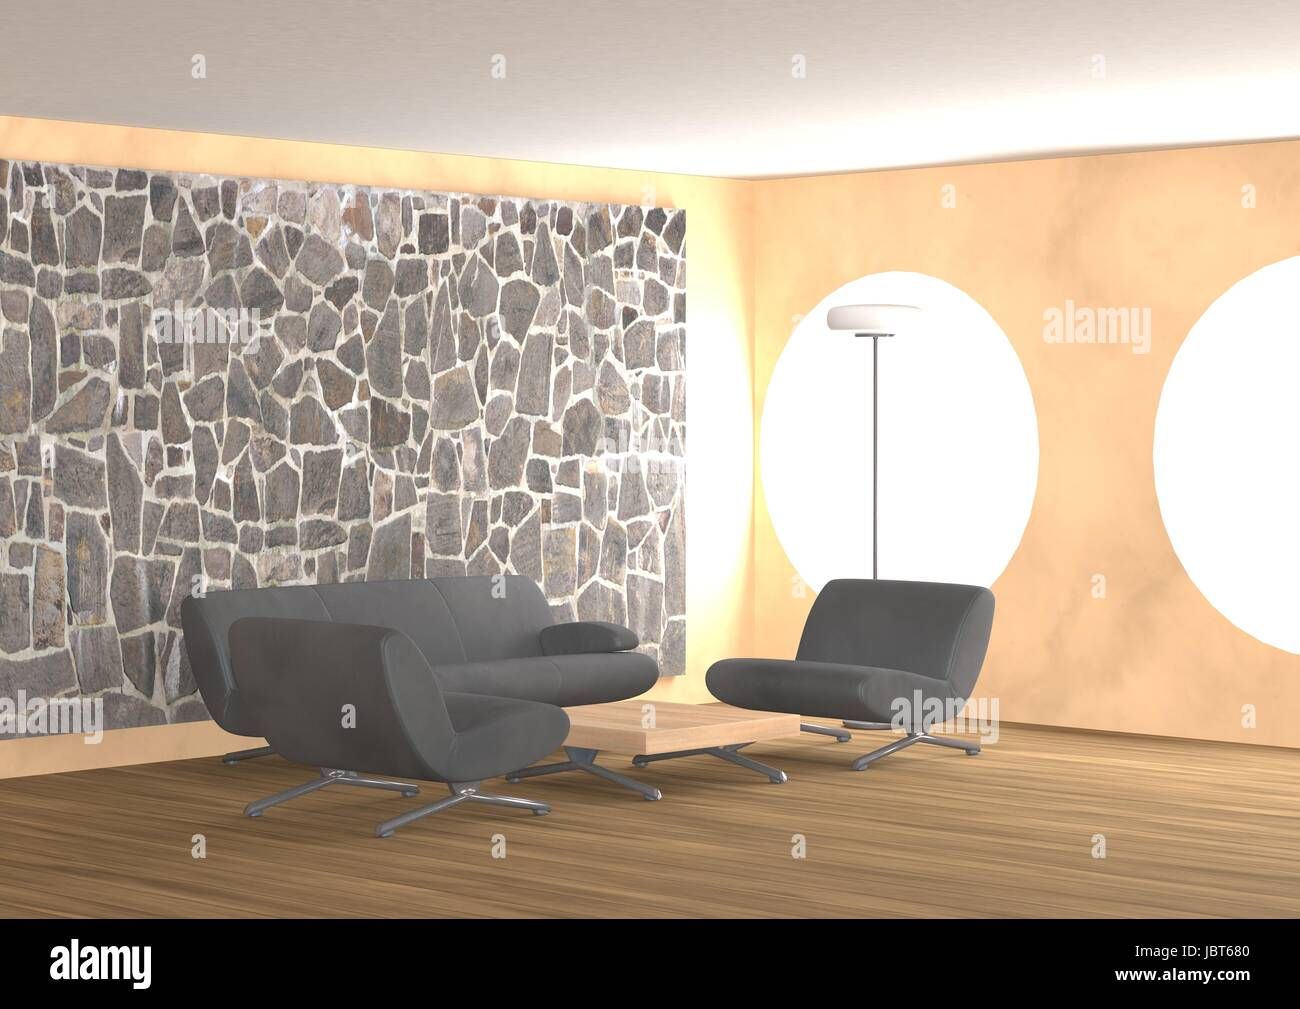 Interieur-Design Stockbild